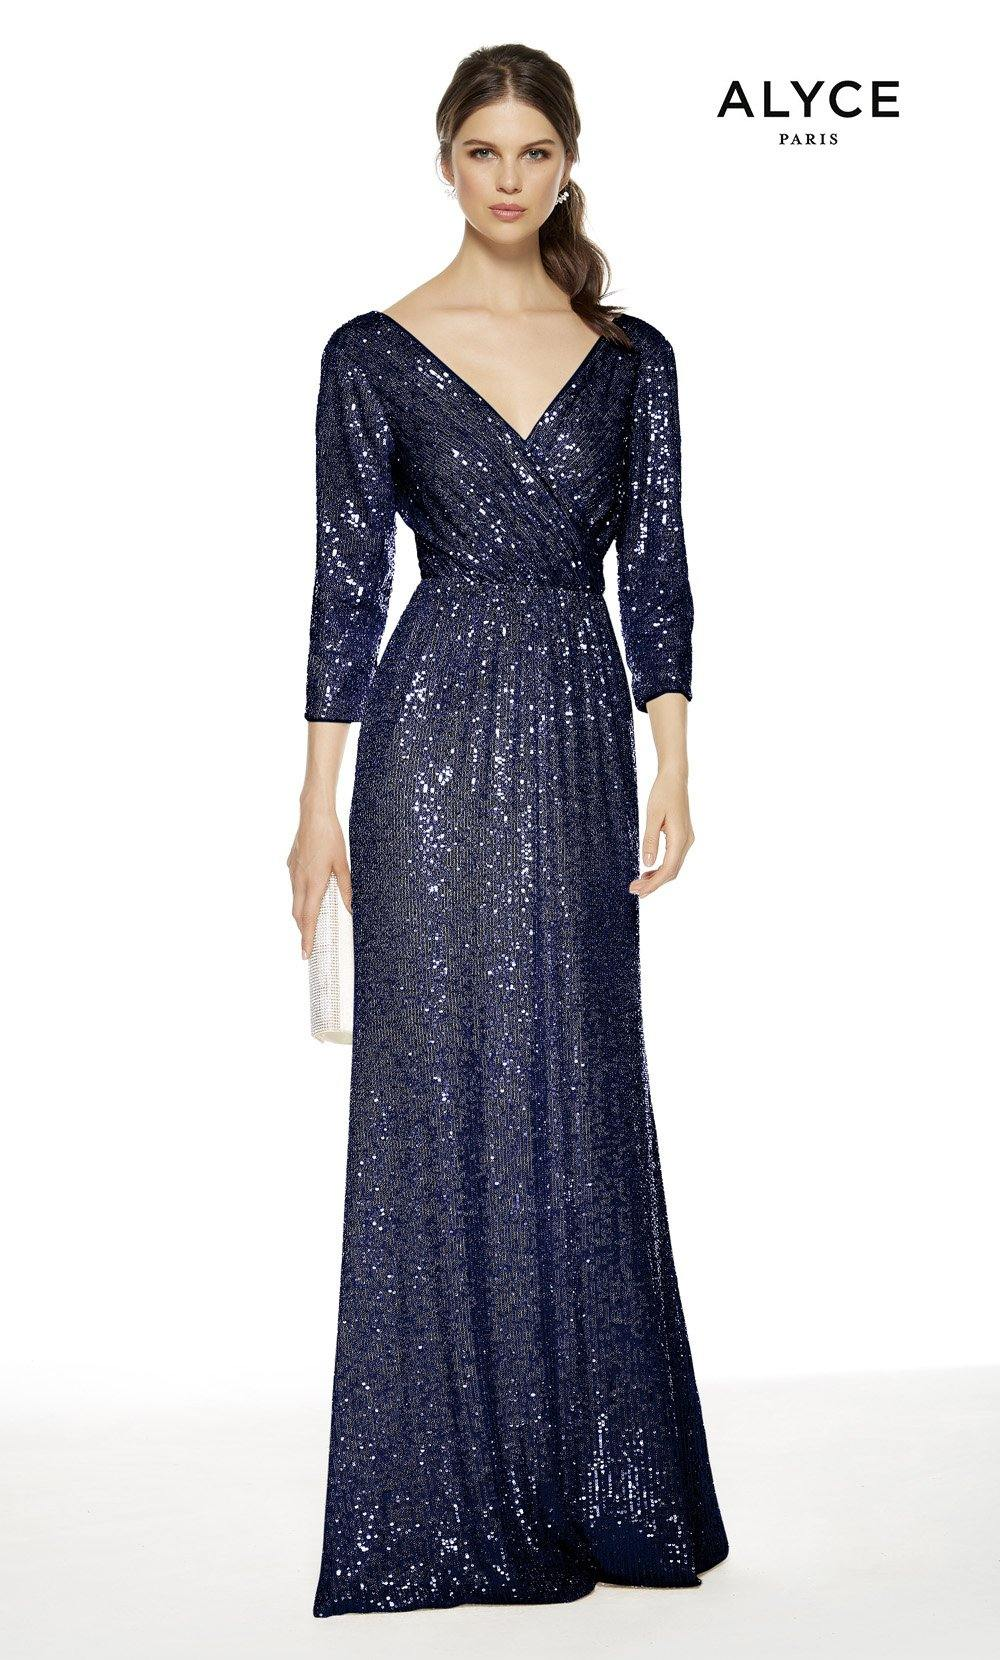 Navy colored sequin formal dress with a V-neckline and 3/4 sleeves